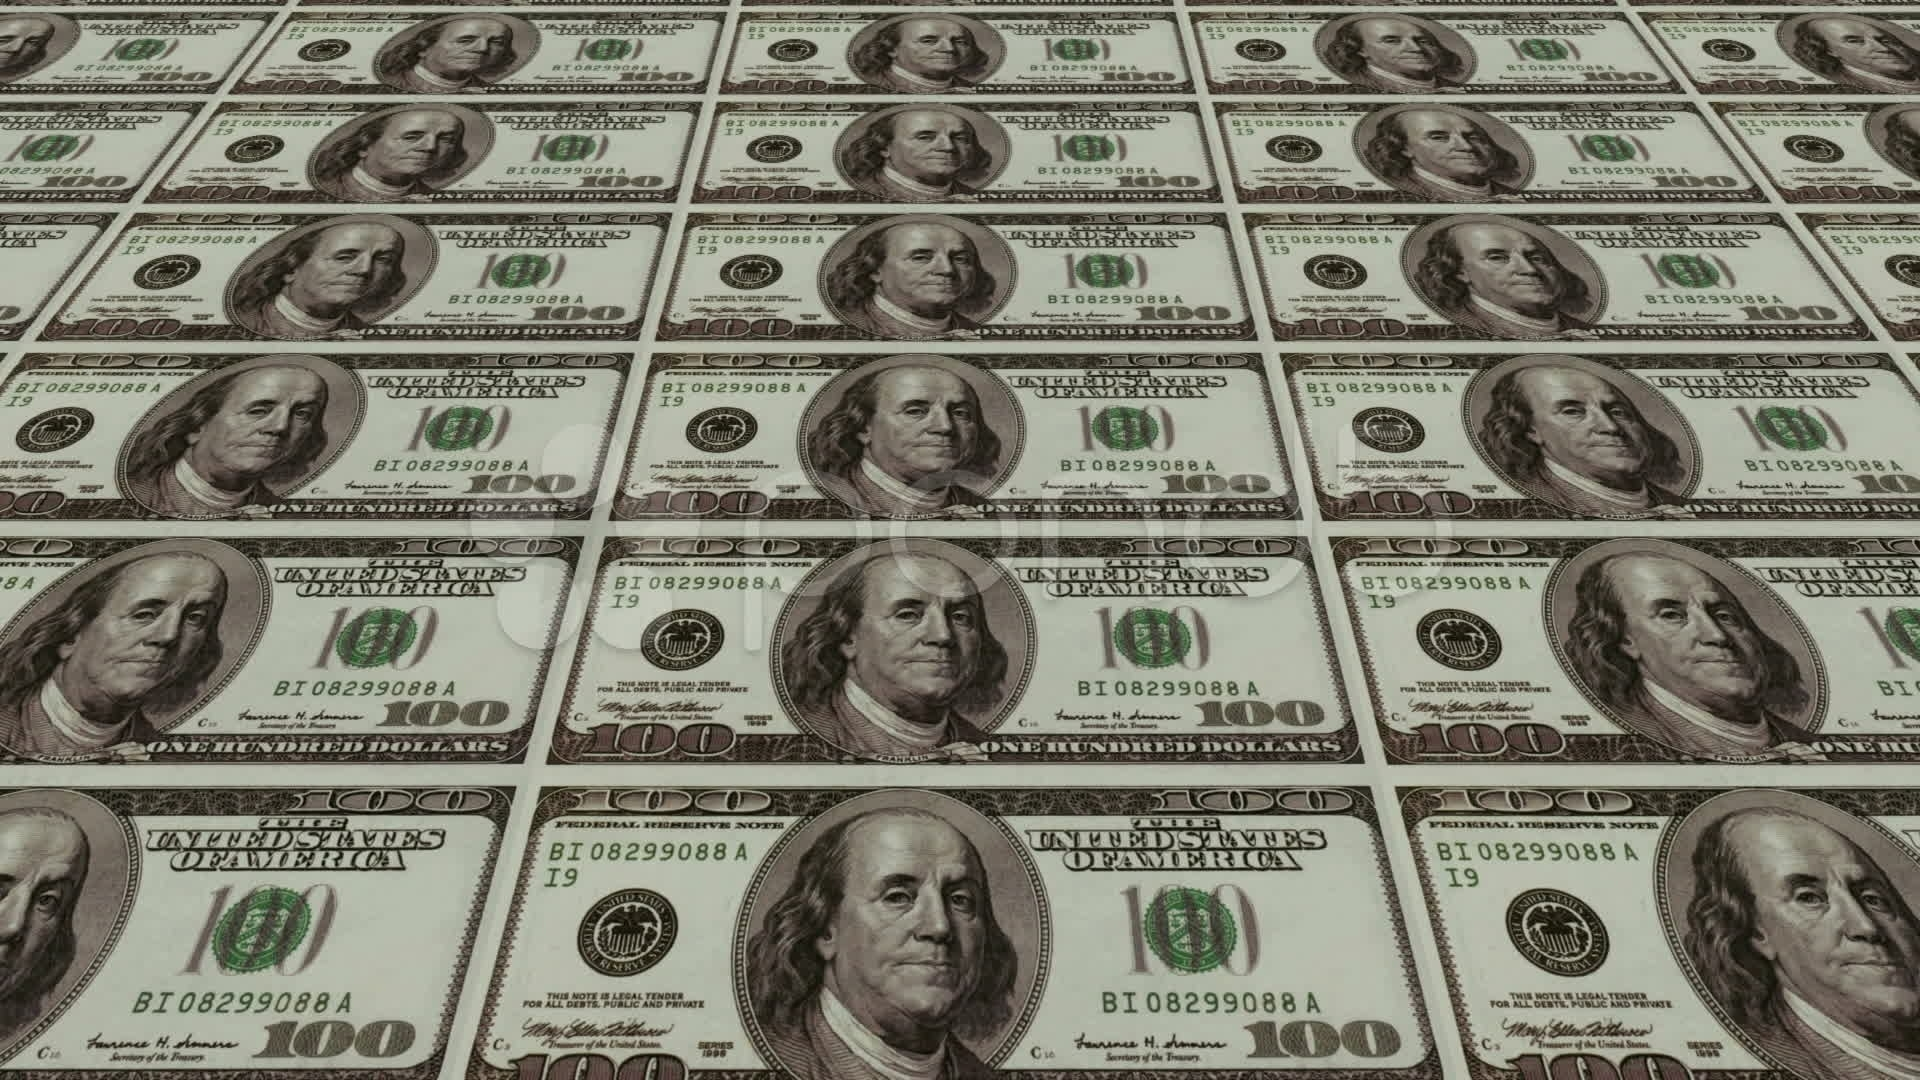 100 dollar bill wallpapers - wallpaper cave